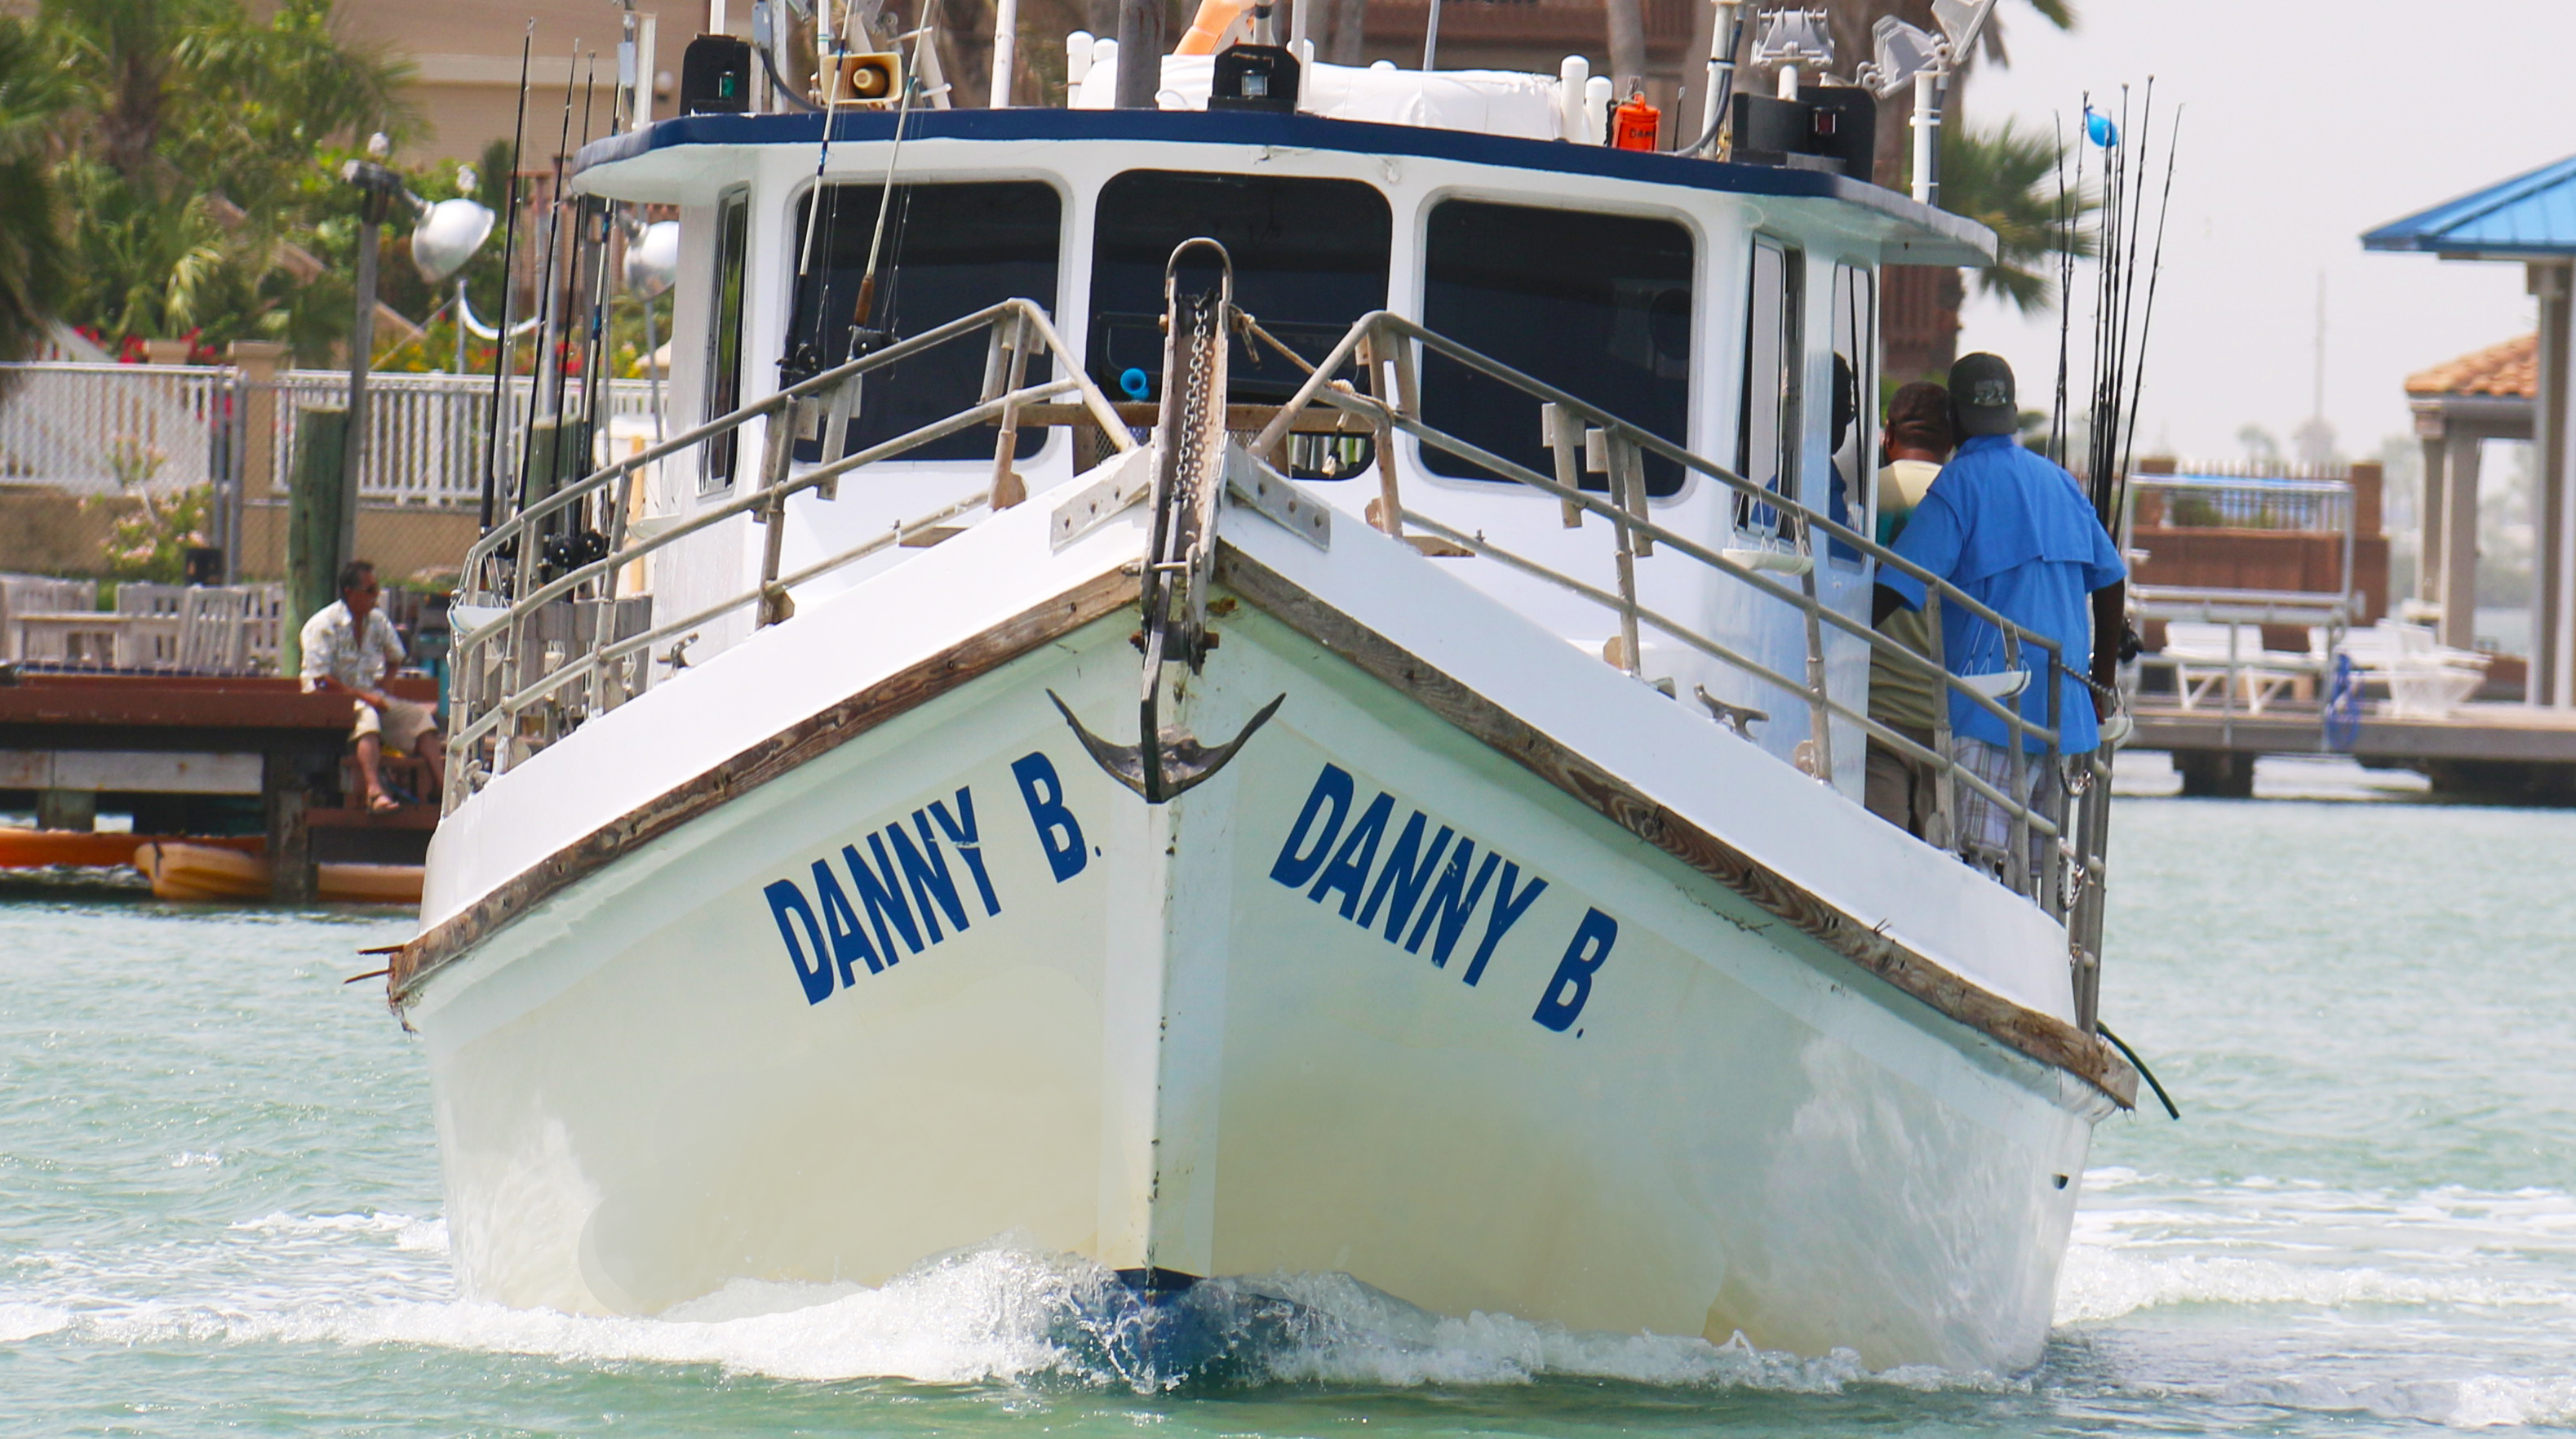 Bay fishing on the Danny B